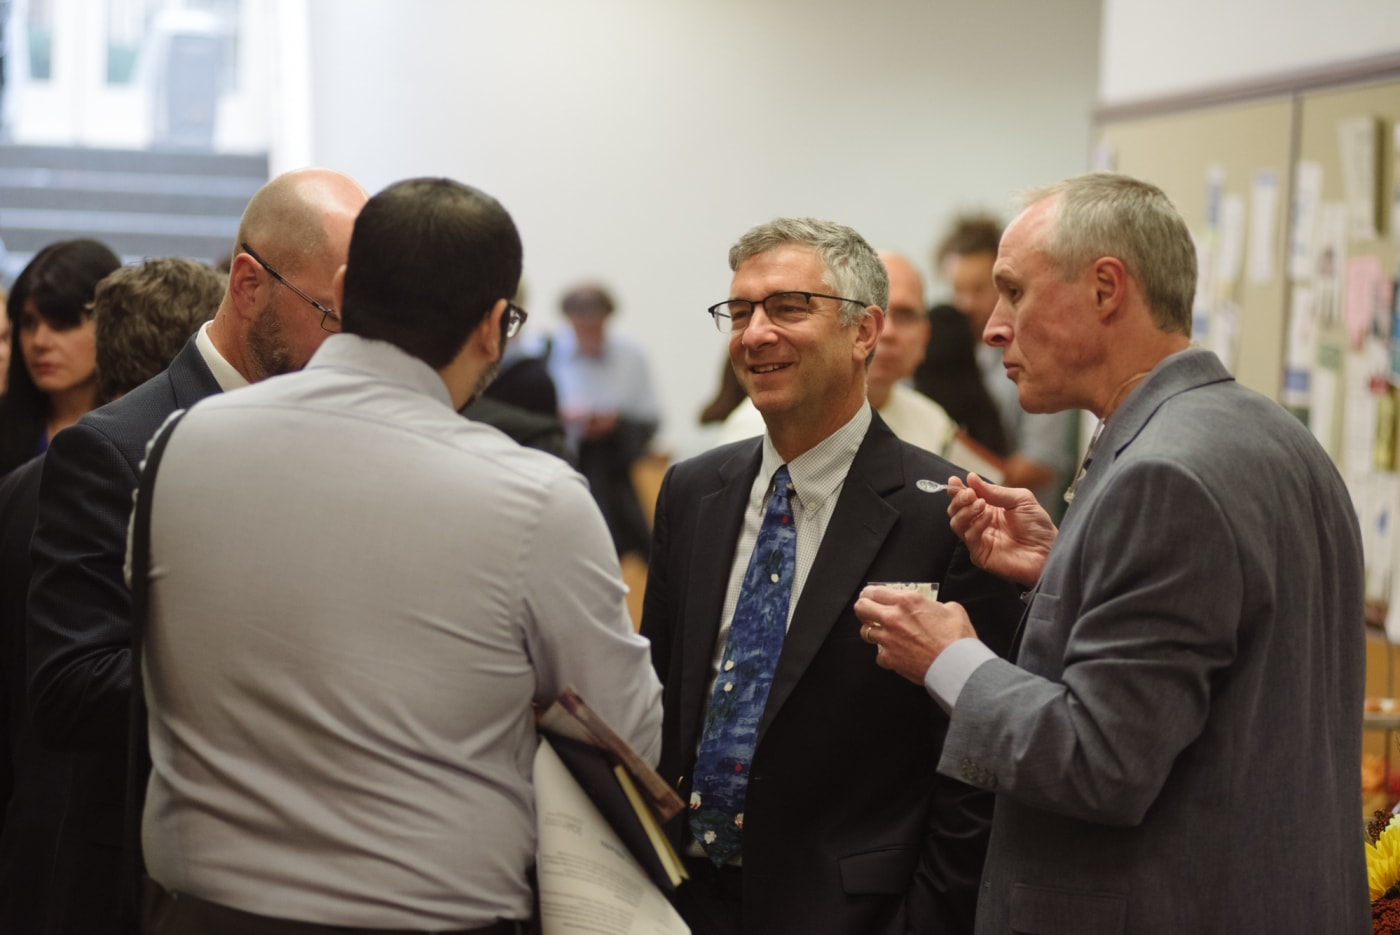 Yale Center for Immuno-Oncology Dean's Symposium, October 11, 2019